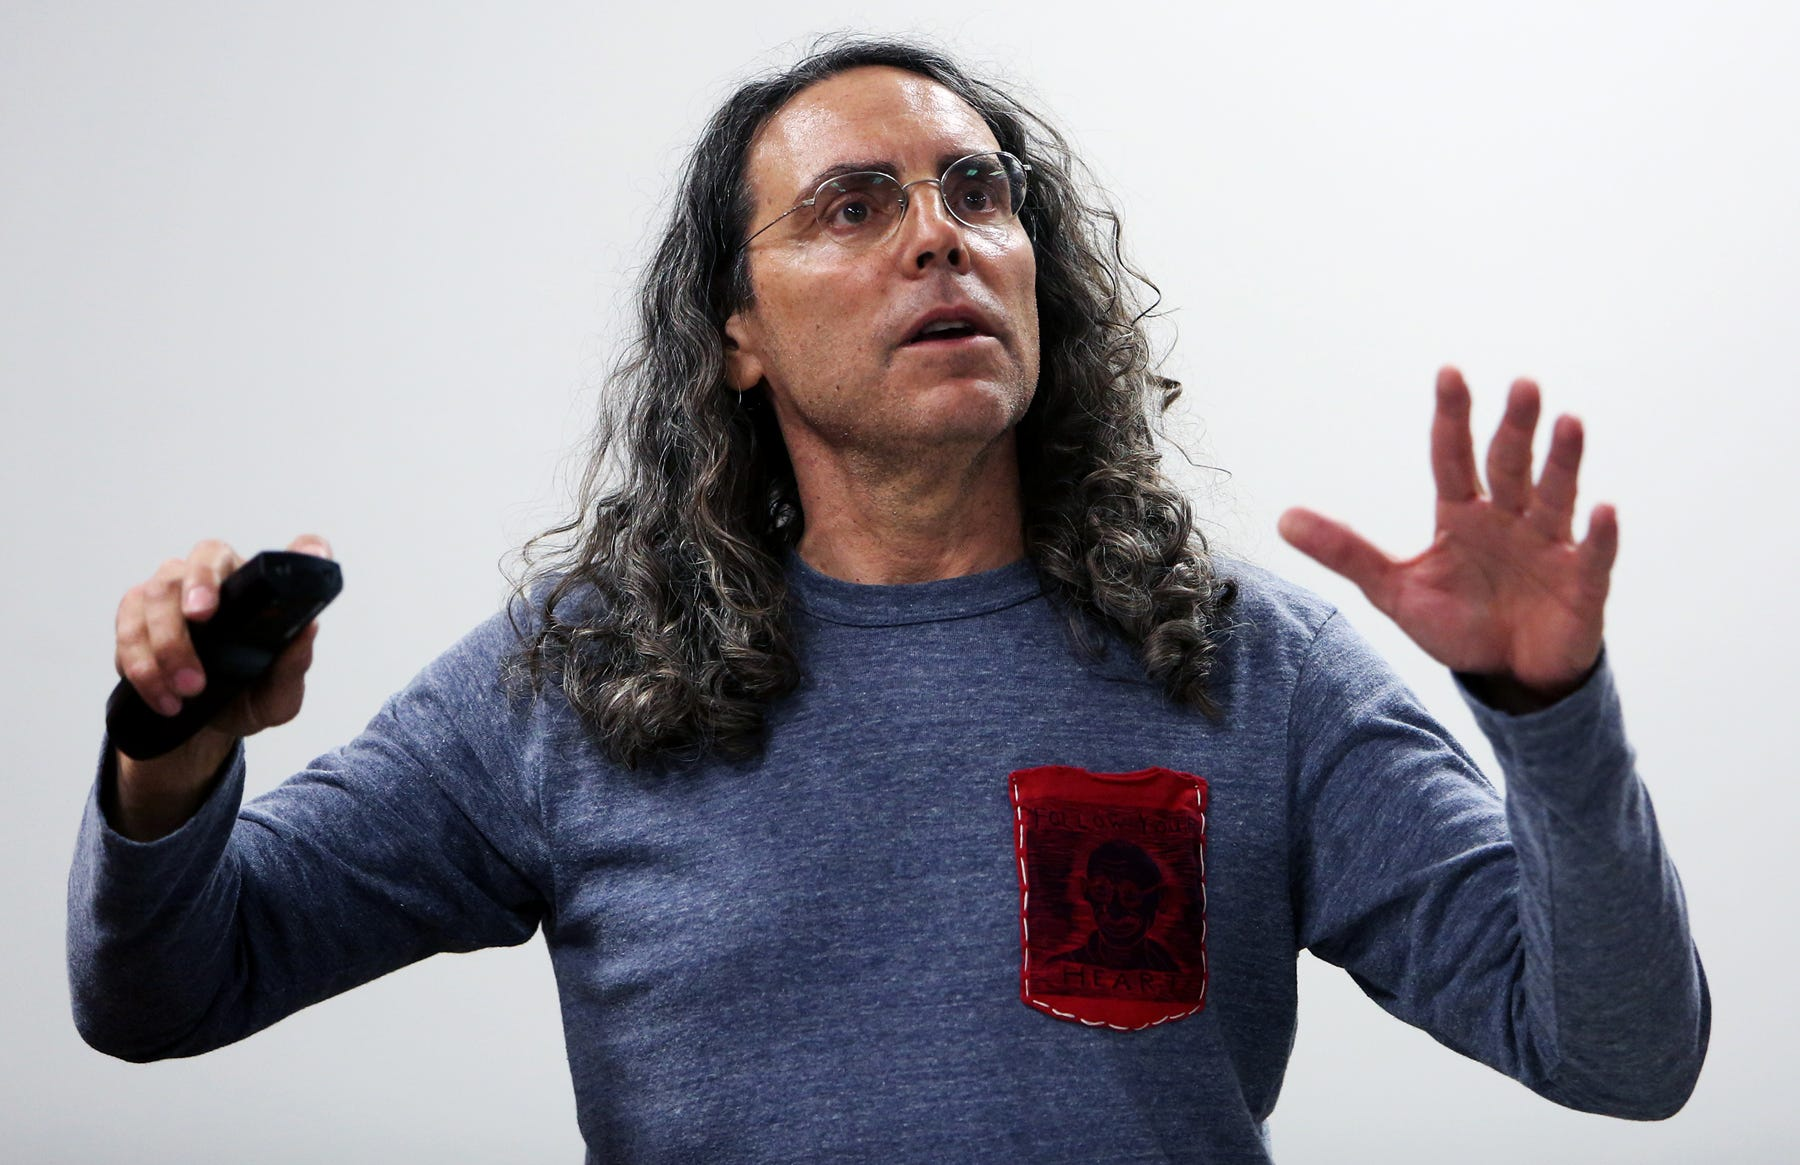 tom shadyac imdbtom shadyac wiki, tom shadyac instagram, tom shadyac i am watch online, tom shadyac i am, tom shadyac jim carrey, tom shadyac, tom shadyac net worth, tom shadyac i am full movie, tom shadyac biography, tom shadyac facebook, tom shadyac ben, tom shadyac contact, tom shadyac married, tom shadyac memphis, tom shadyac movies, tom shadyac i am español, tom shadyac biografia, tom shadyac i am full movie subtitulada, tom shadyac imdb, tom shadyac quotes